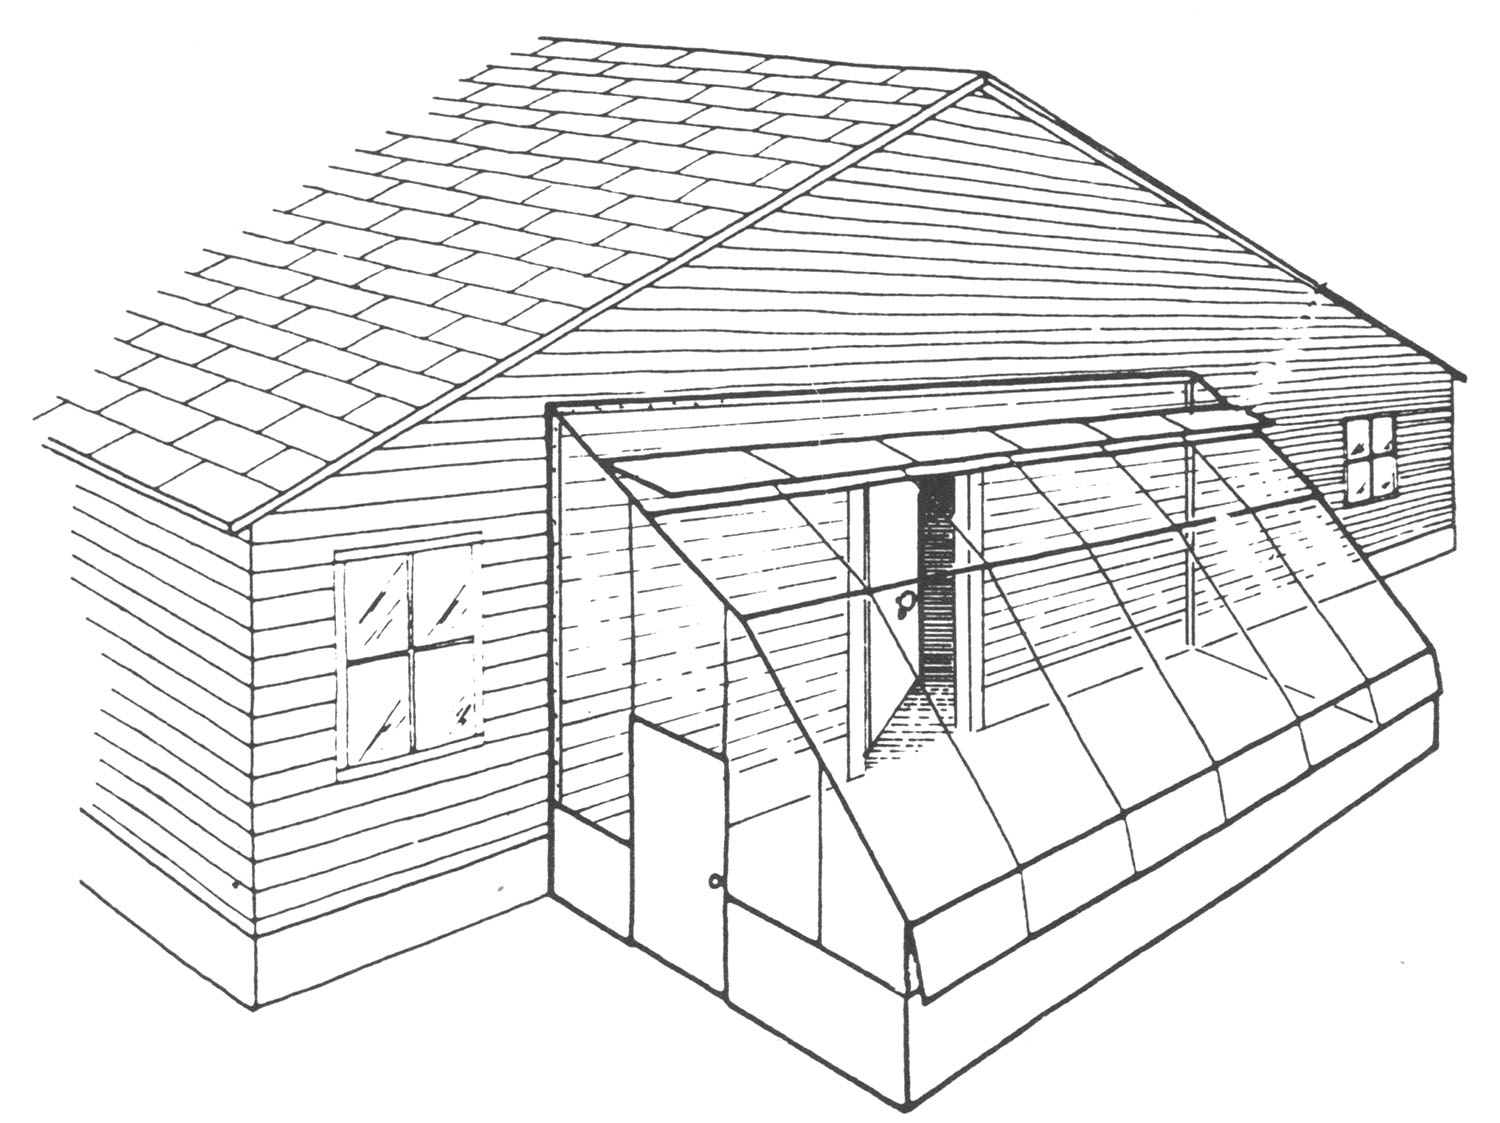 Sketch of an attached lean-to greenhouse.